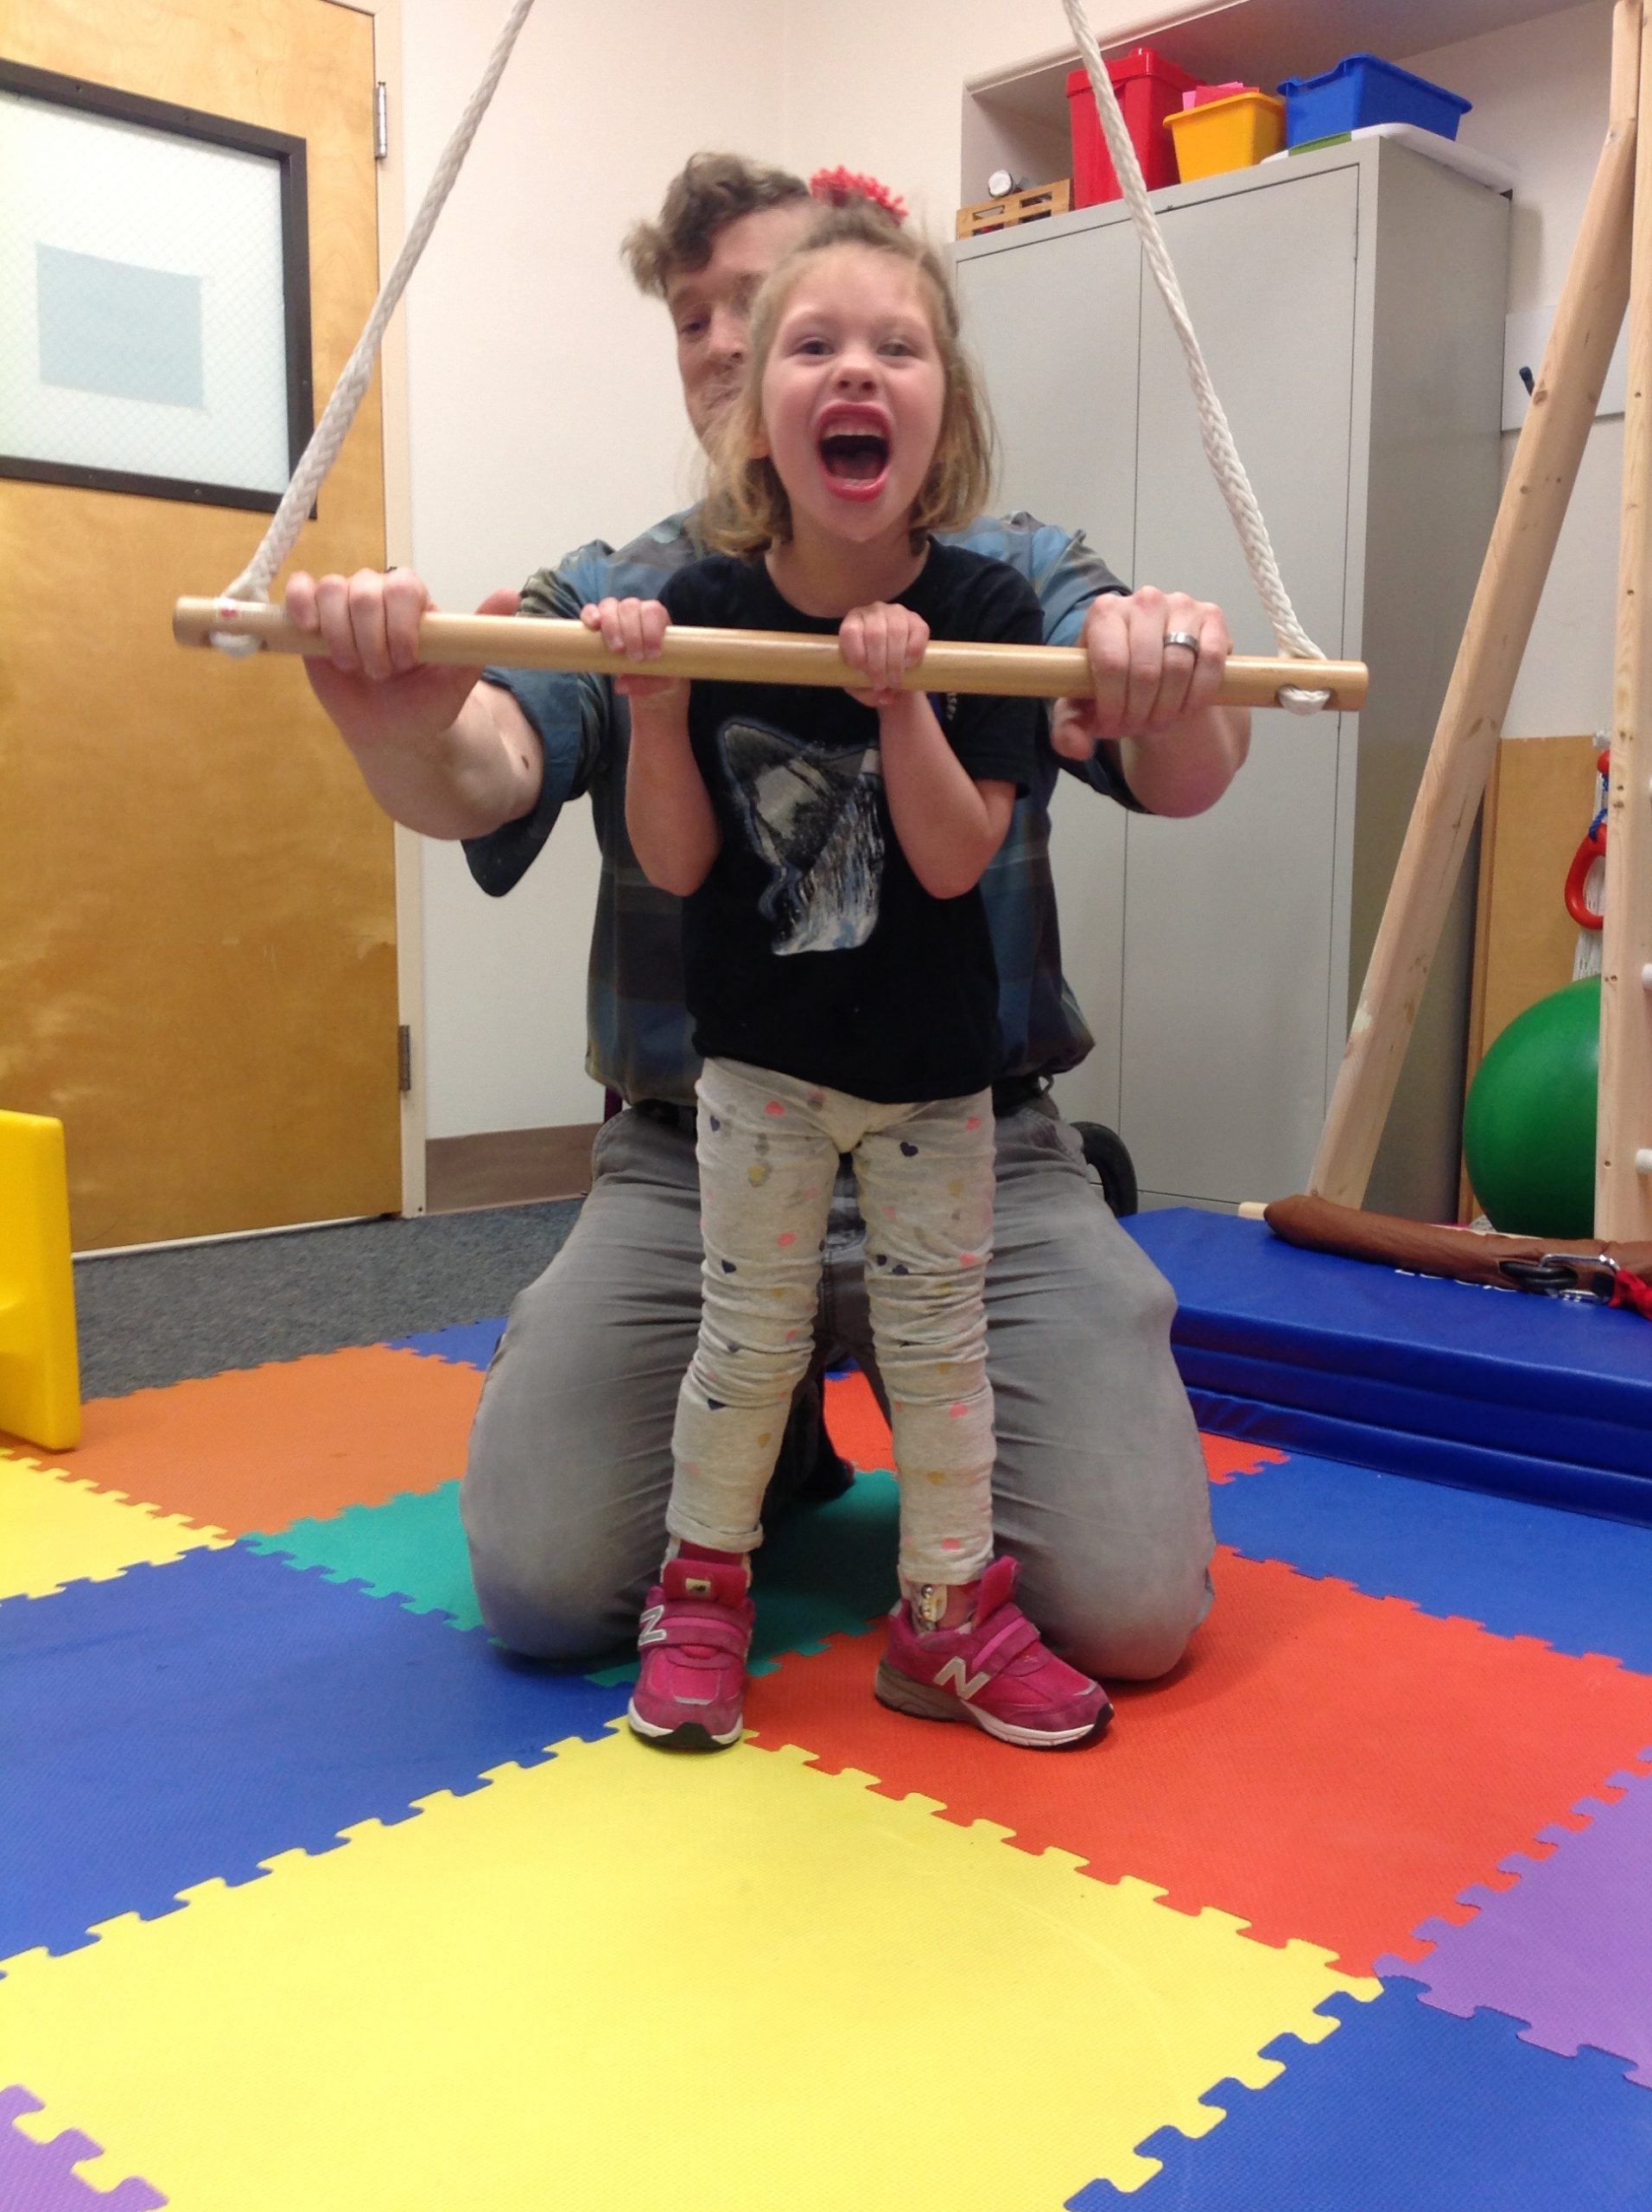 A young girl is using bar supports to stand tall while her teacher kneels behind her.